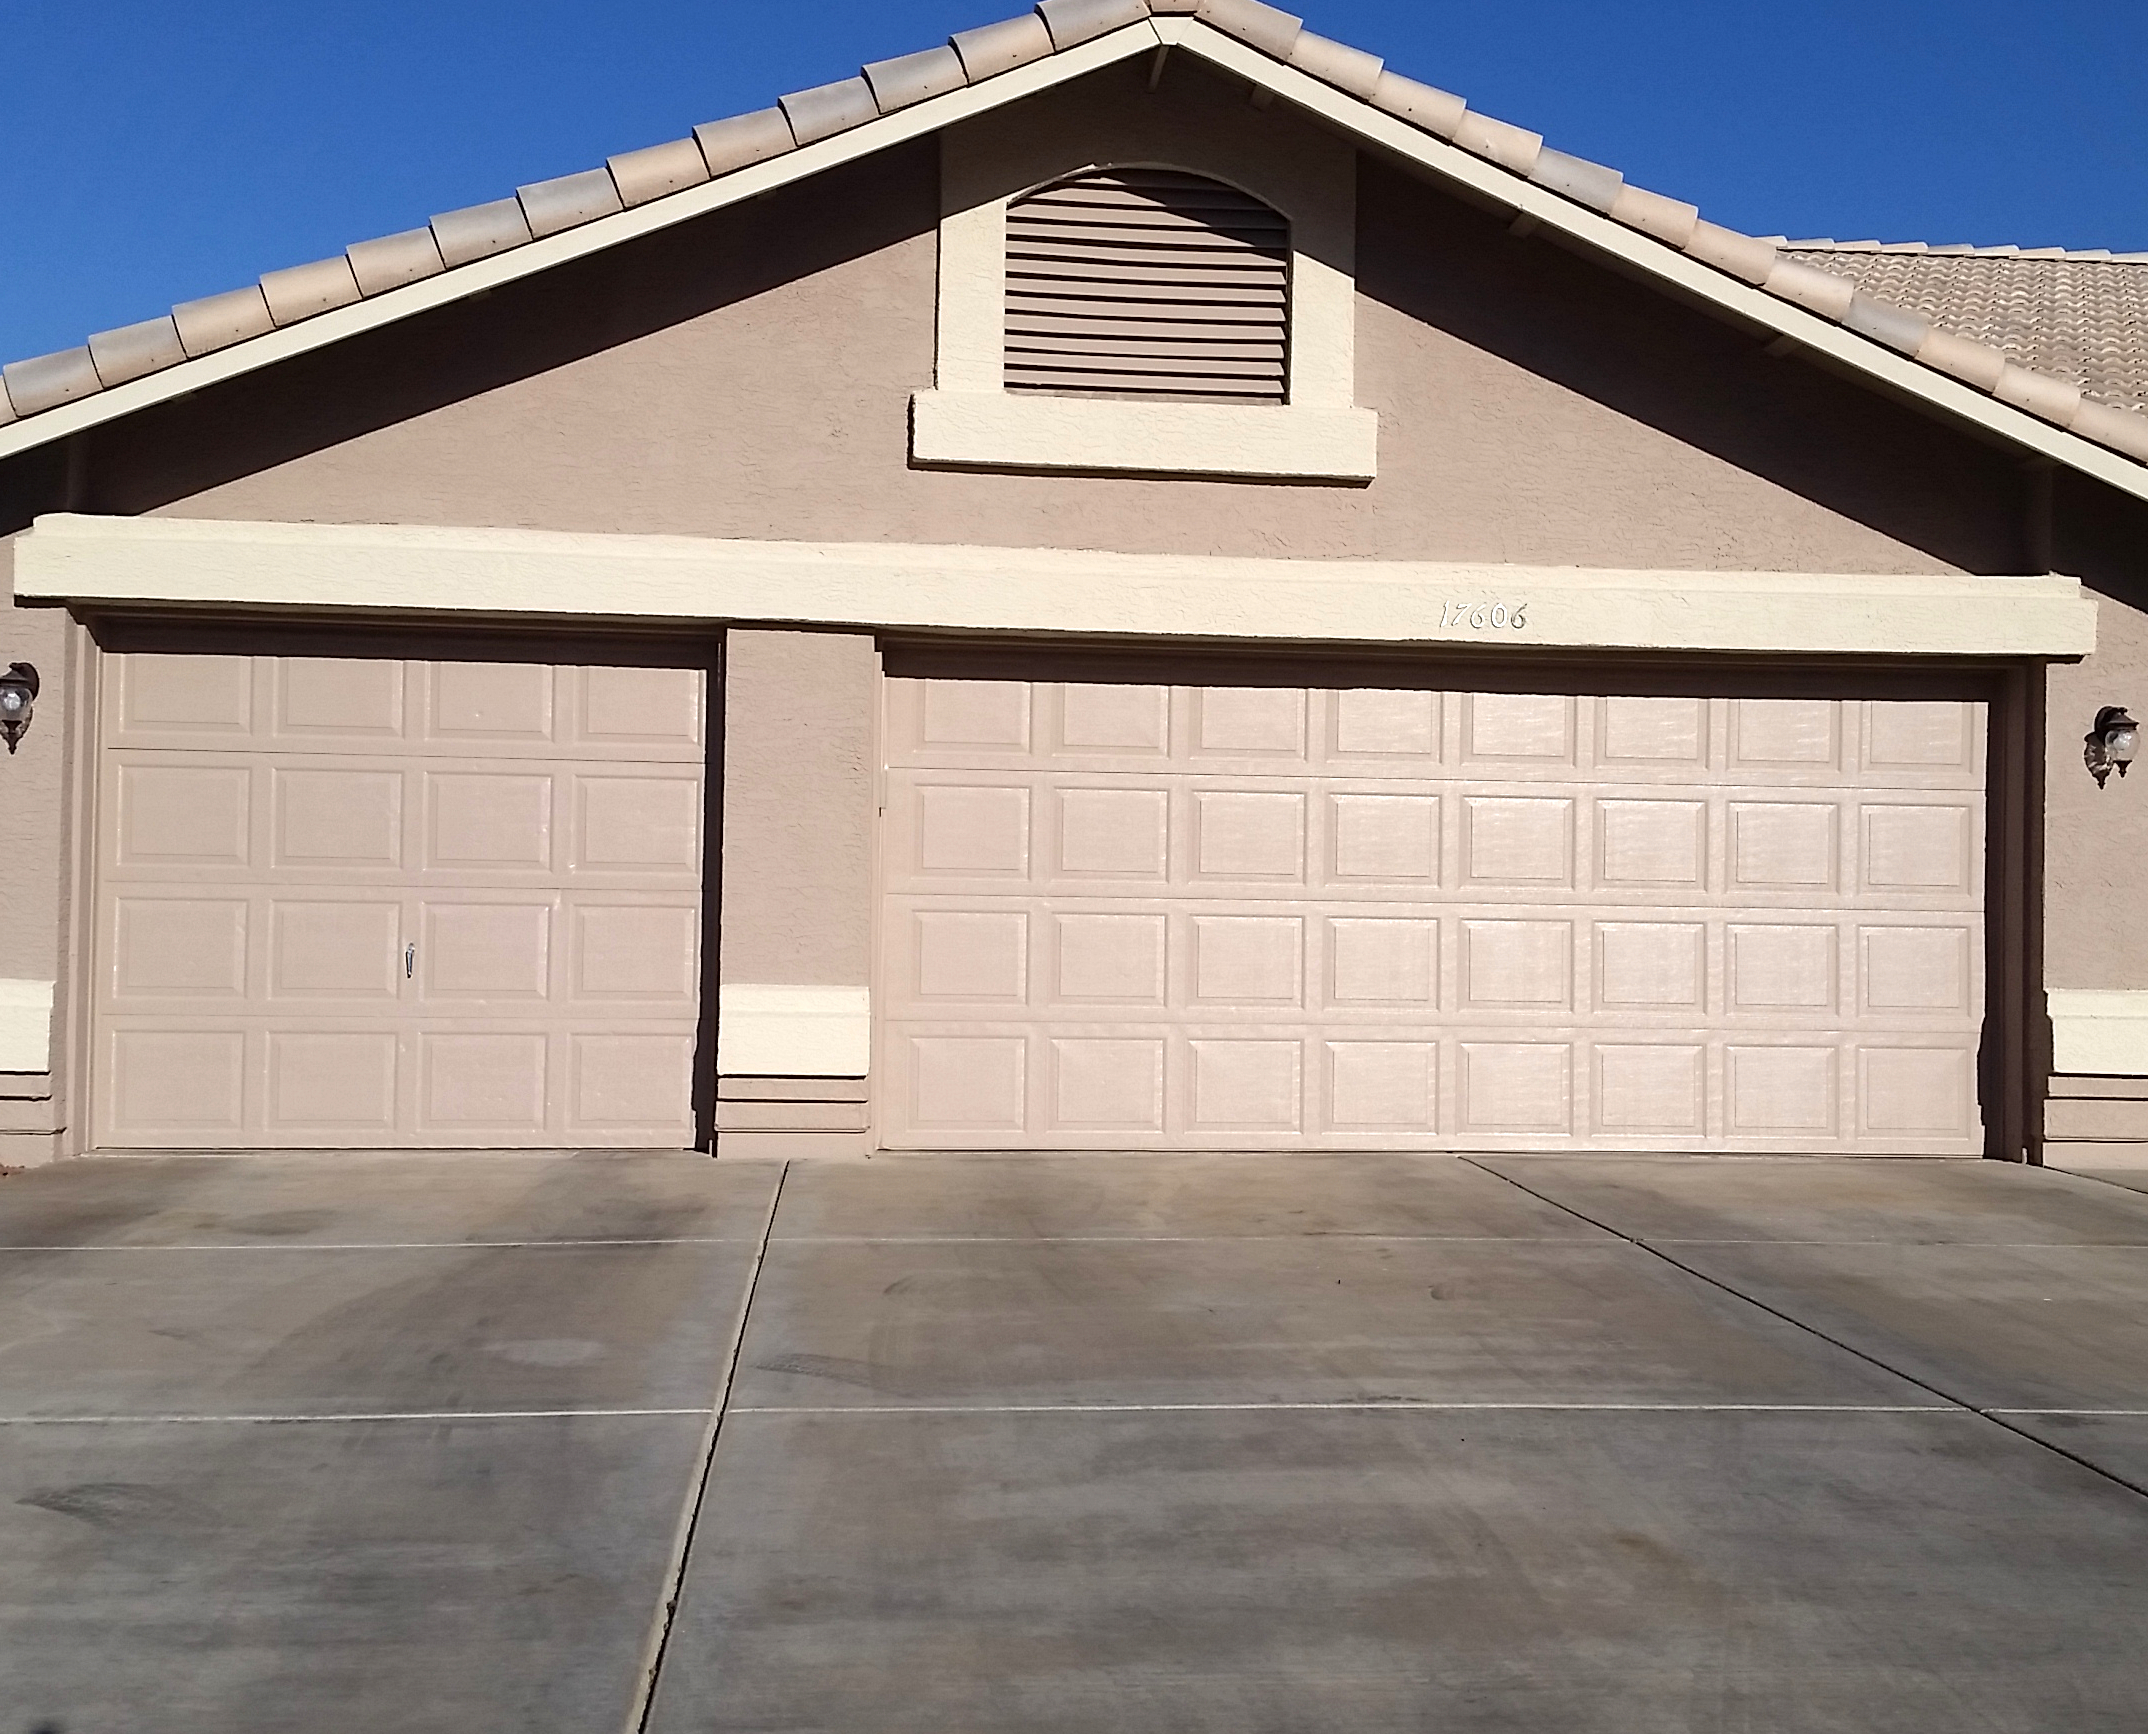 doors in innovative garage exterior phoenix commercial mooresville aluminum door parts denver modern on by garageors repair with denvercommercial az nalley prices